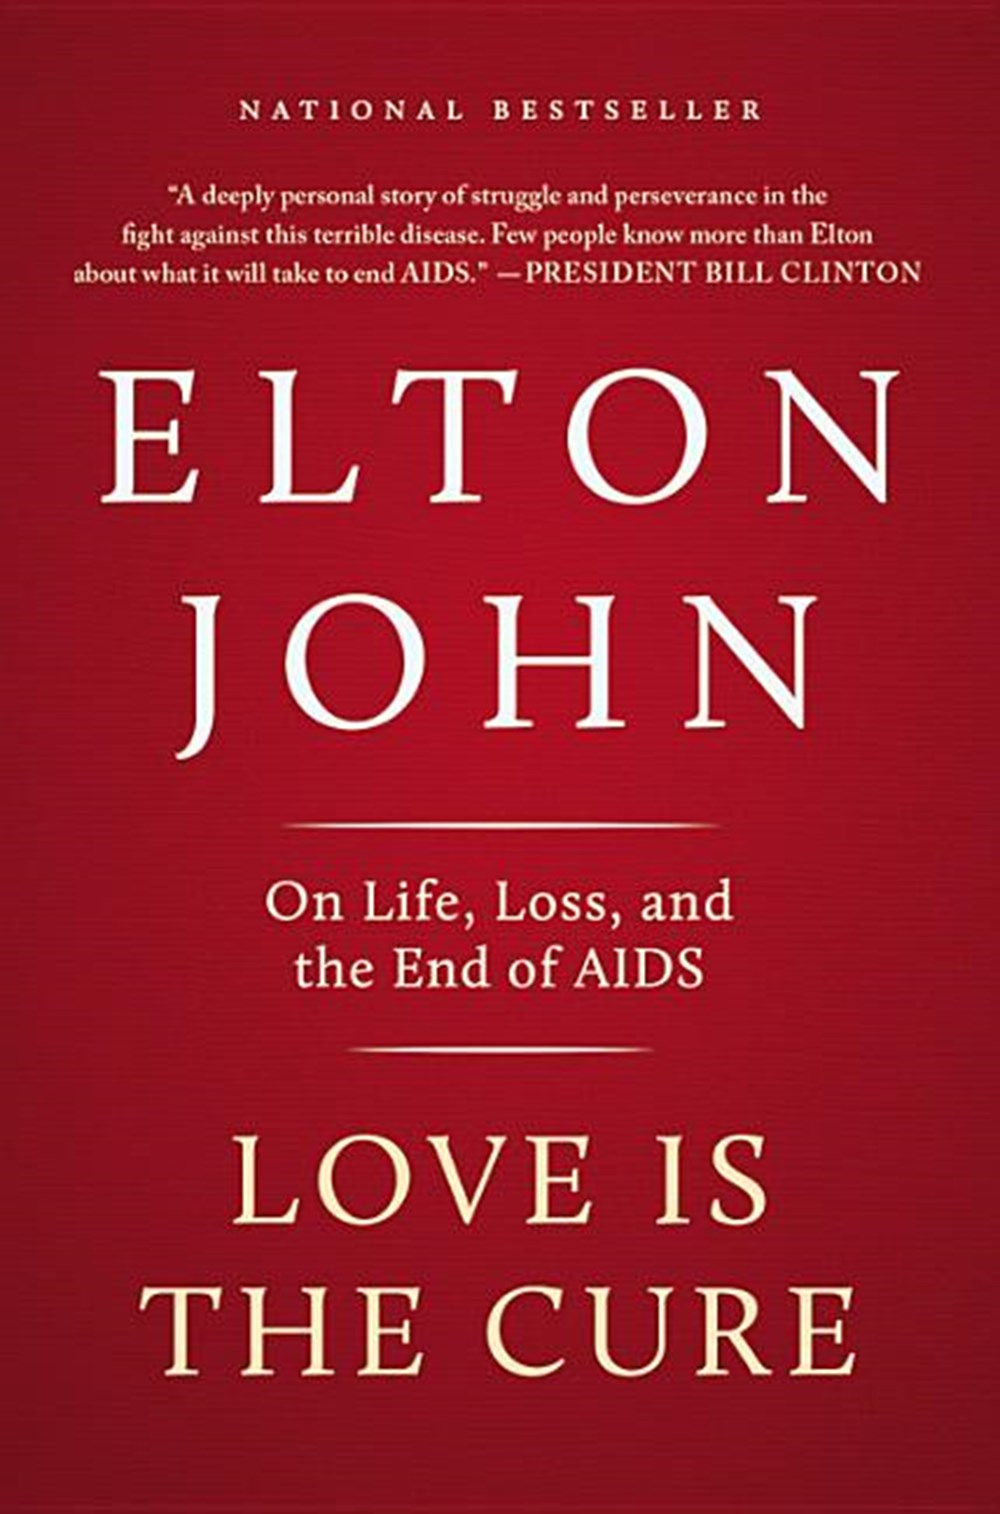 Love Is the Cure On Life, Loss, and the End of AIDS